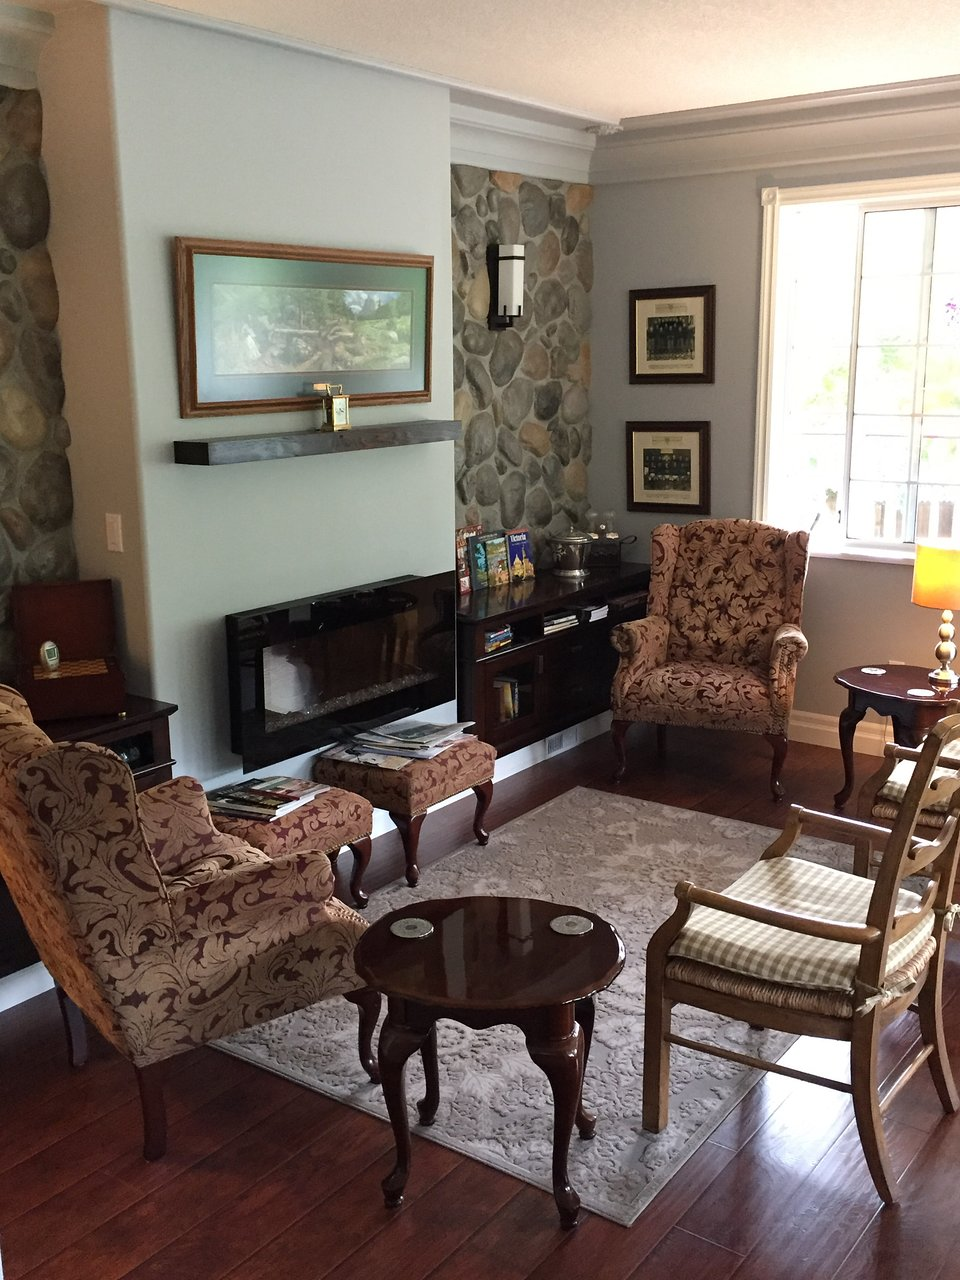 HAWLEY PLACE BED AND BREAKFAST 124 136